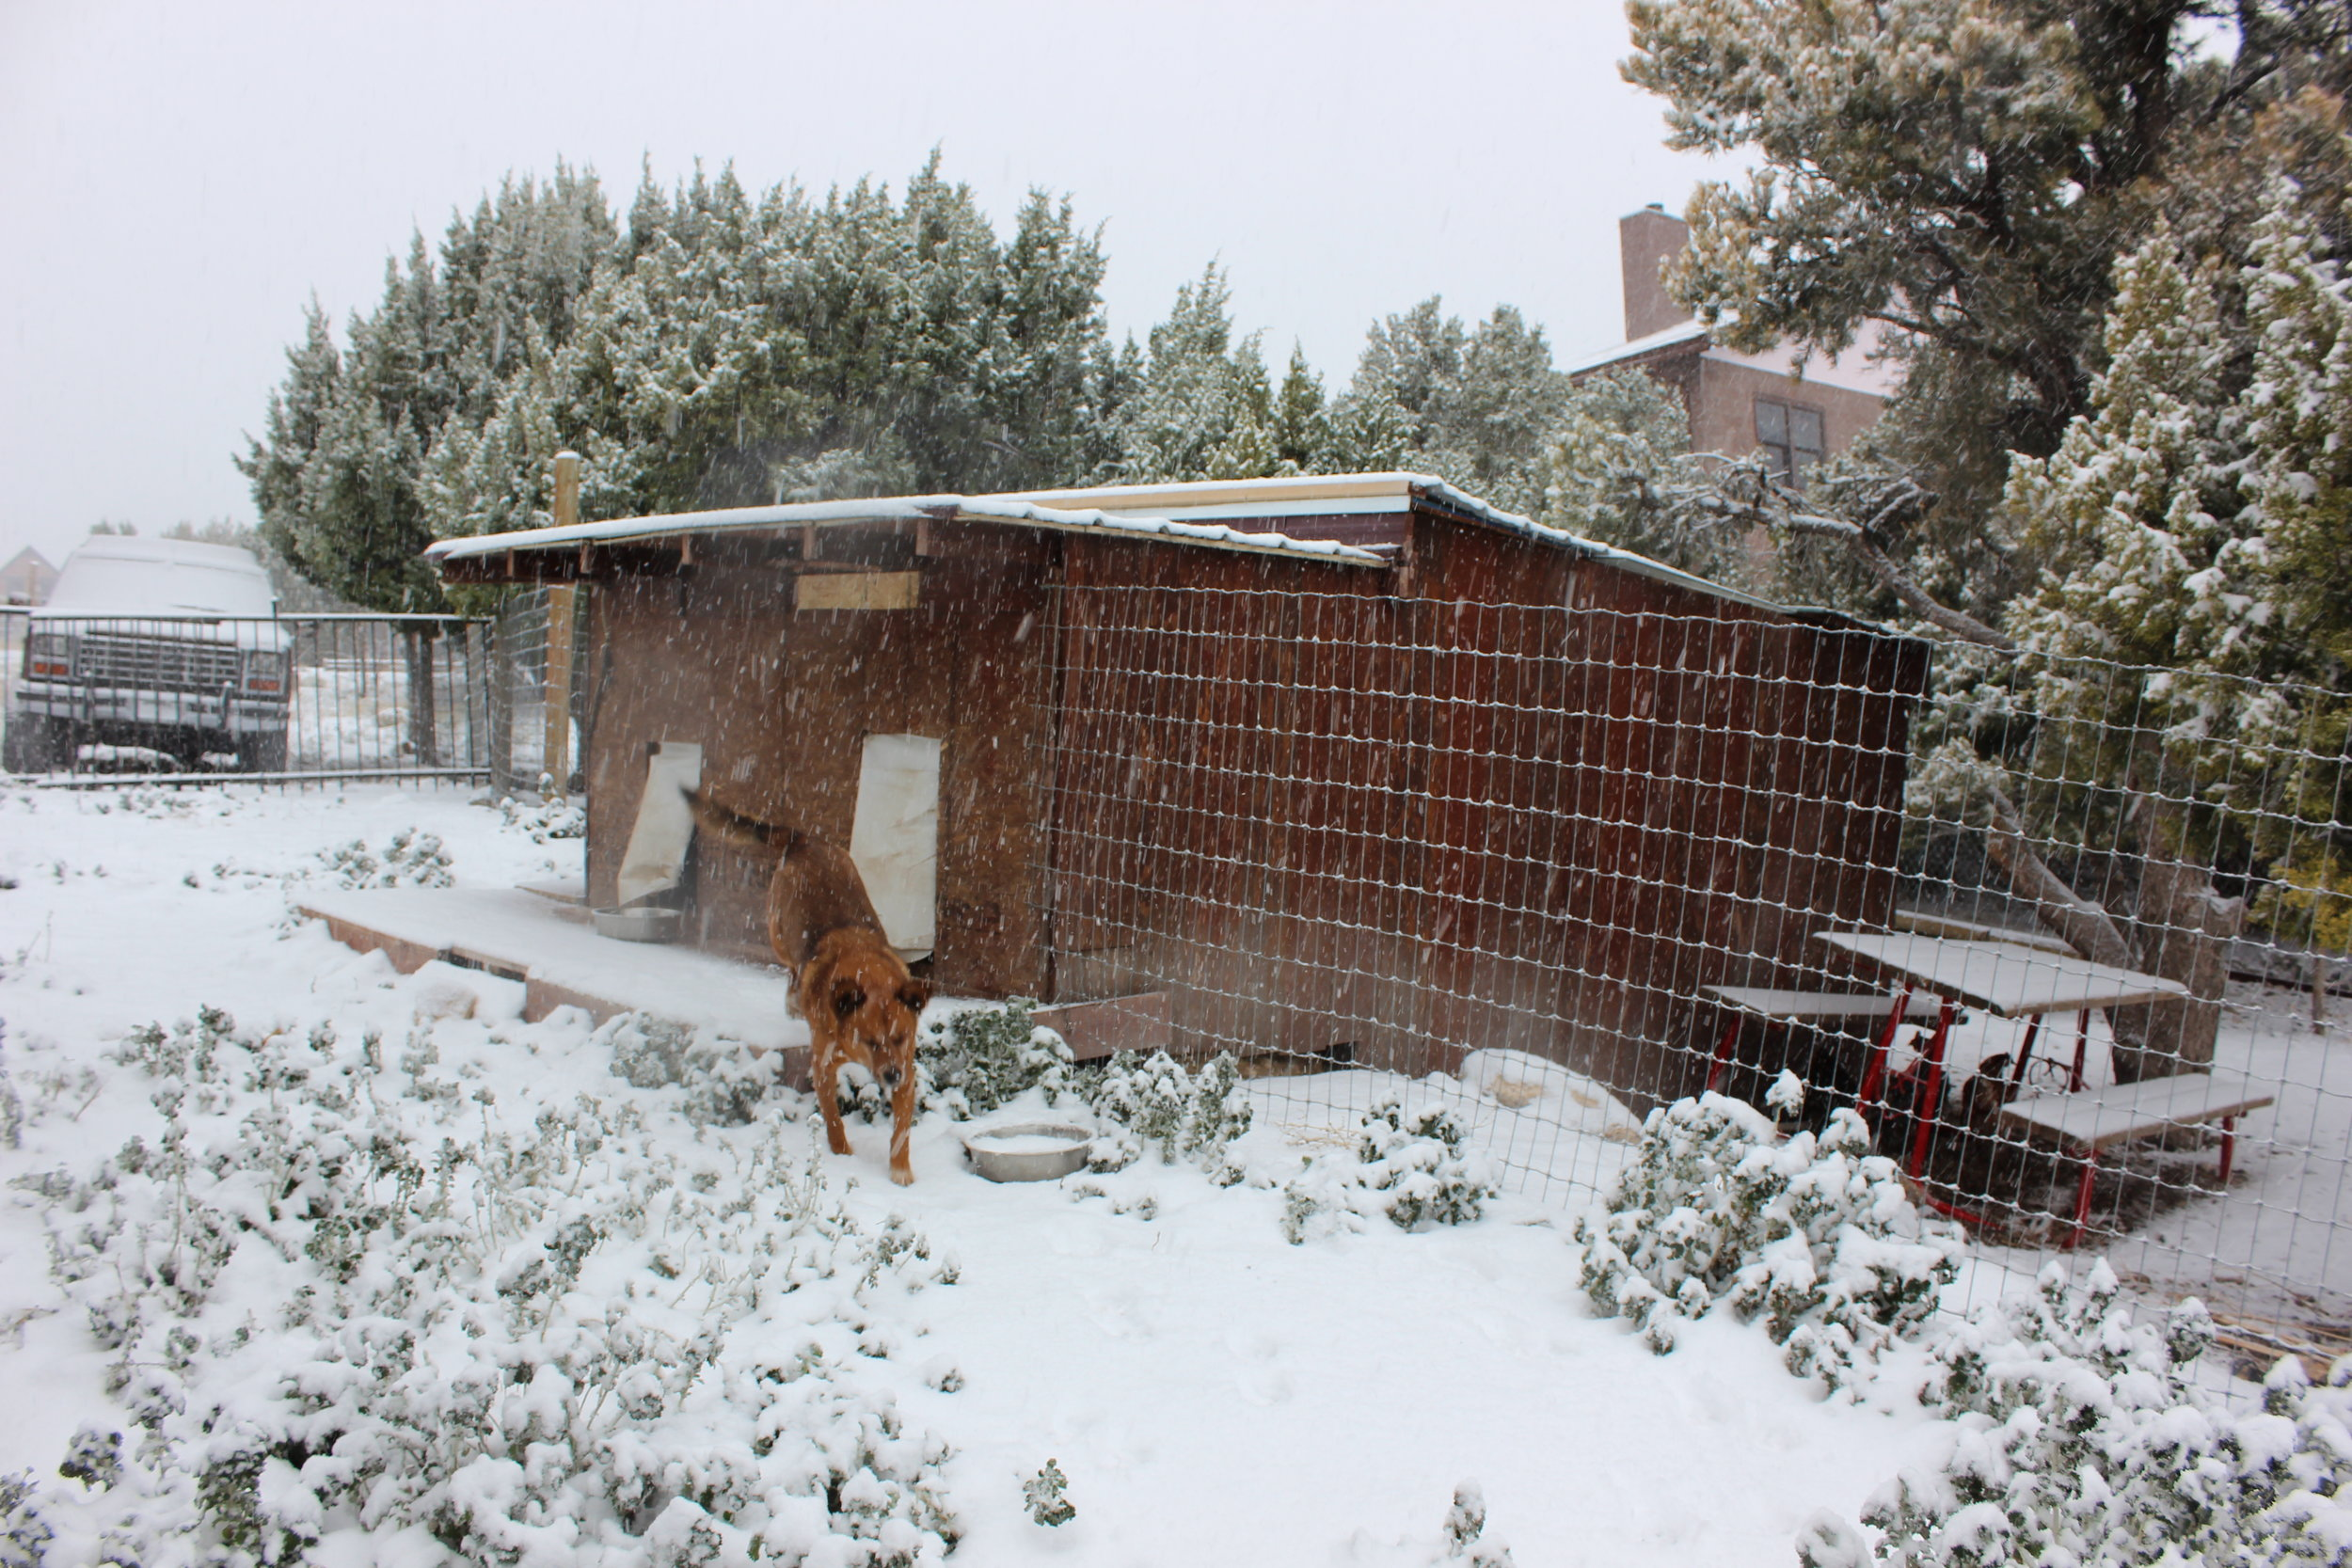 Here is the dog house and chicken coop.  The dog houses back up to the chicken coop, and all sides are insulated.  This makes for a nice cozy coop for the chickens and a great place for the dogs to get out of the elements if they need during the day.  They come in with us at night.